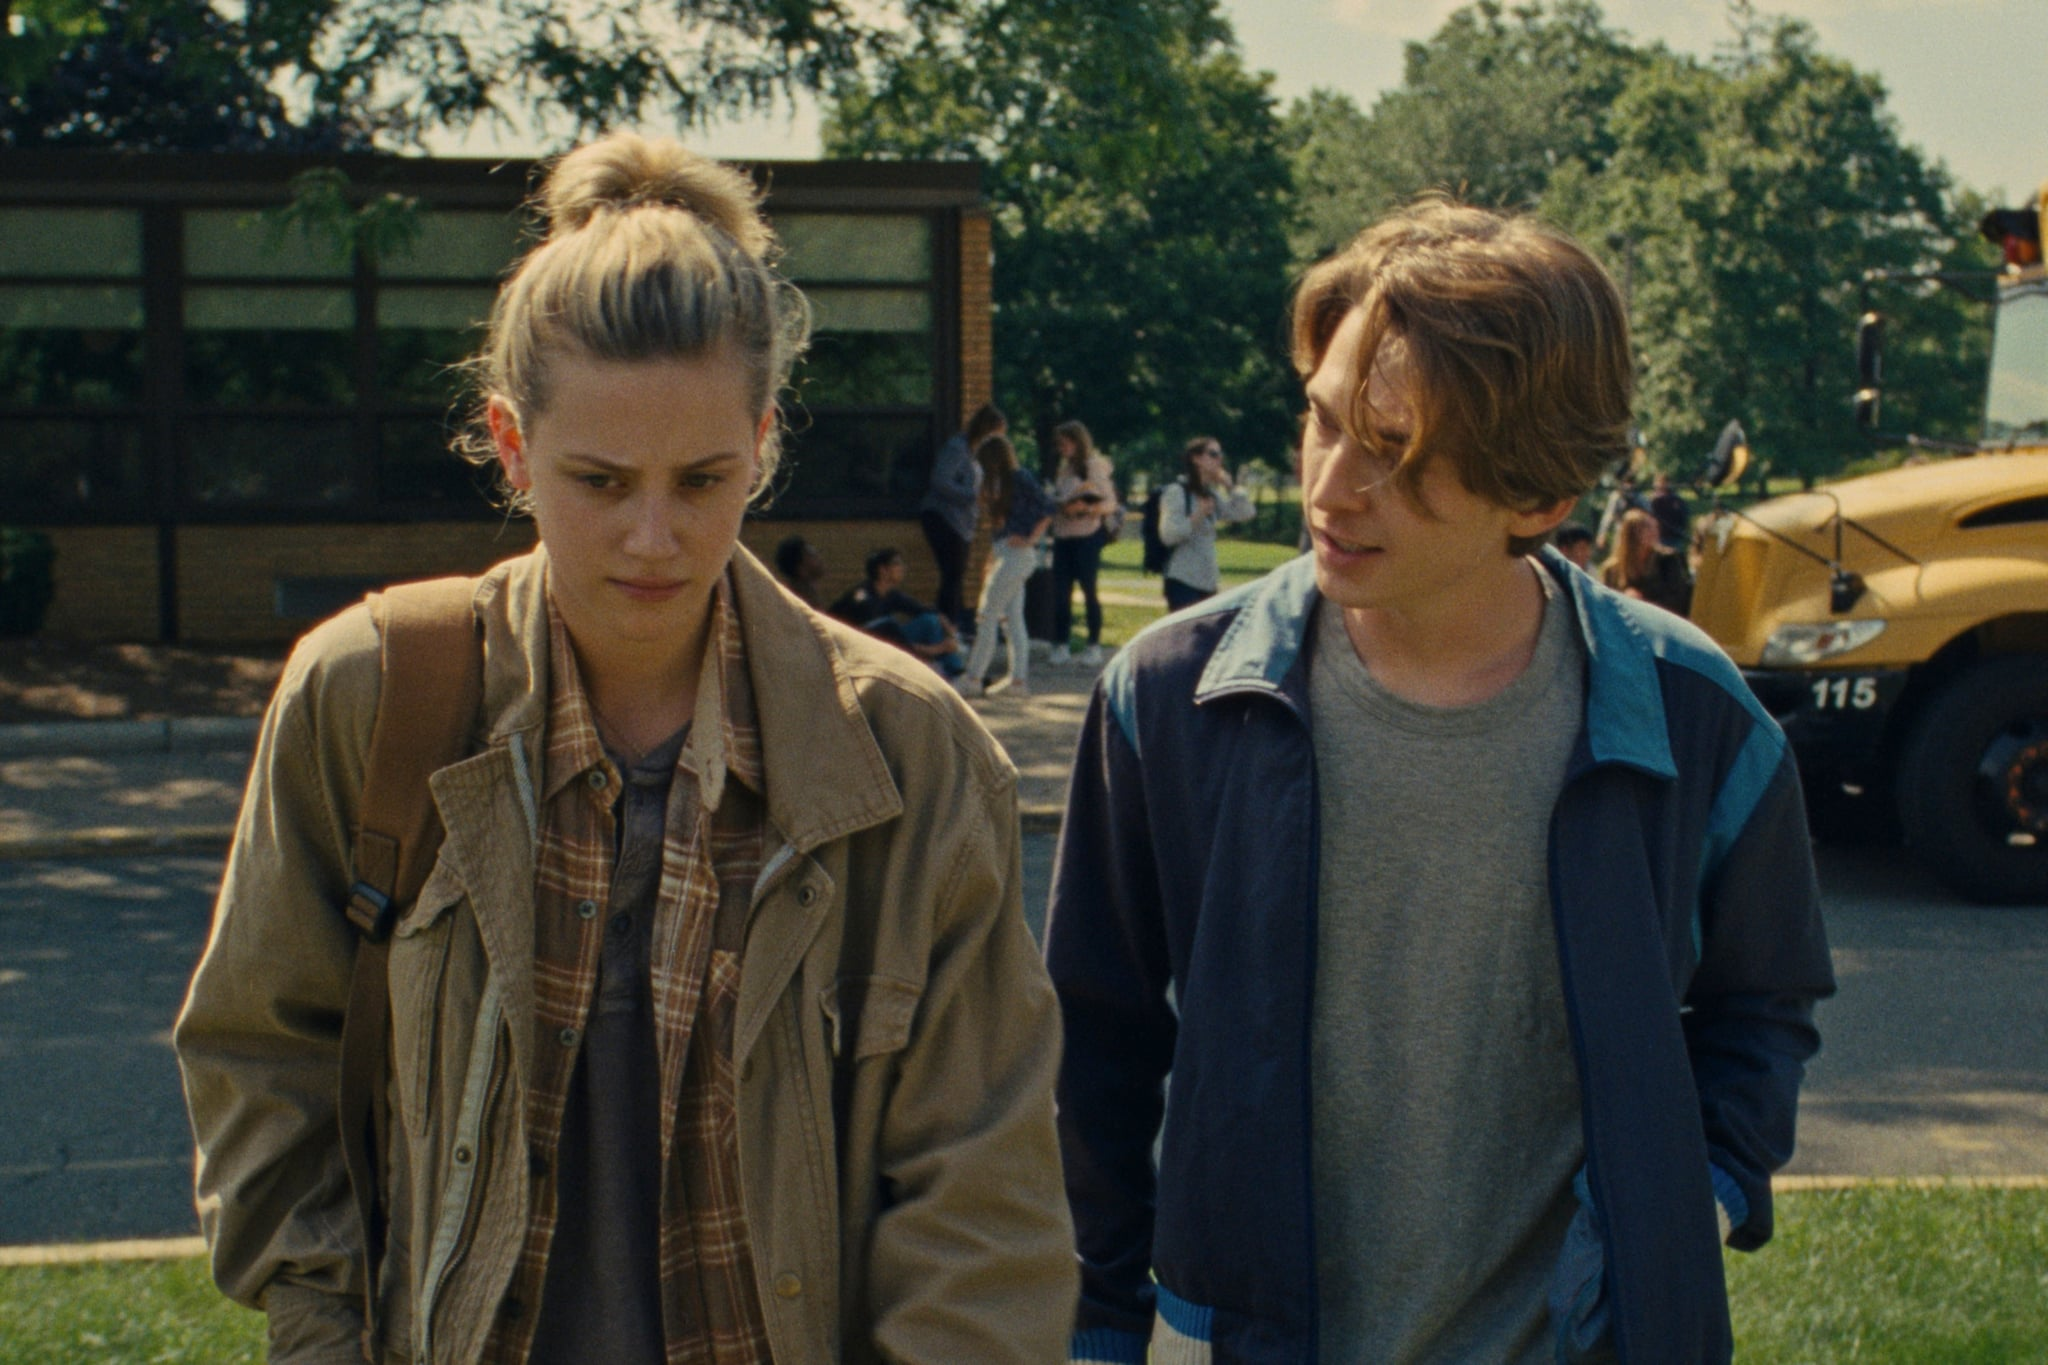 CHEMICAL HEARTS, from left: Lili Reinhart, Austin Abrams, 2020.  Amazon / Courtesy Everett Collection